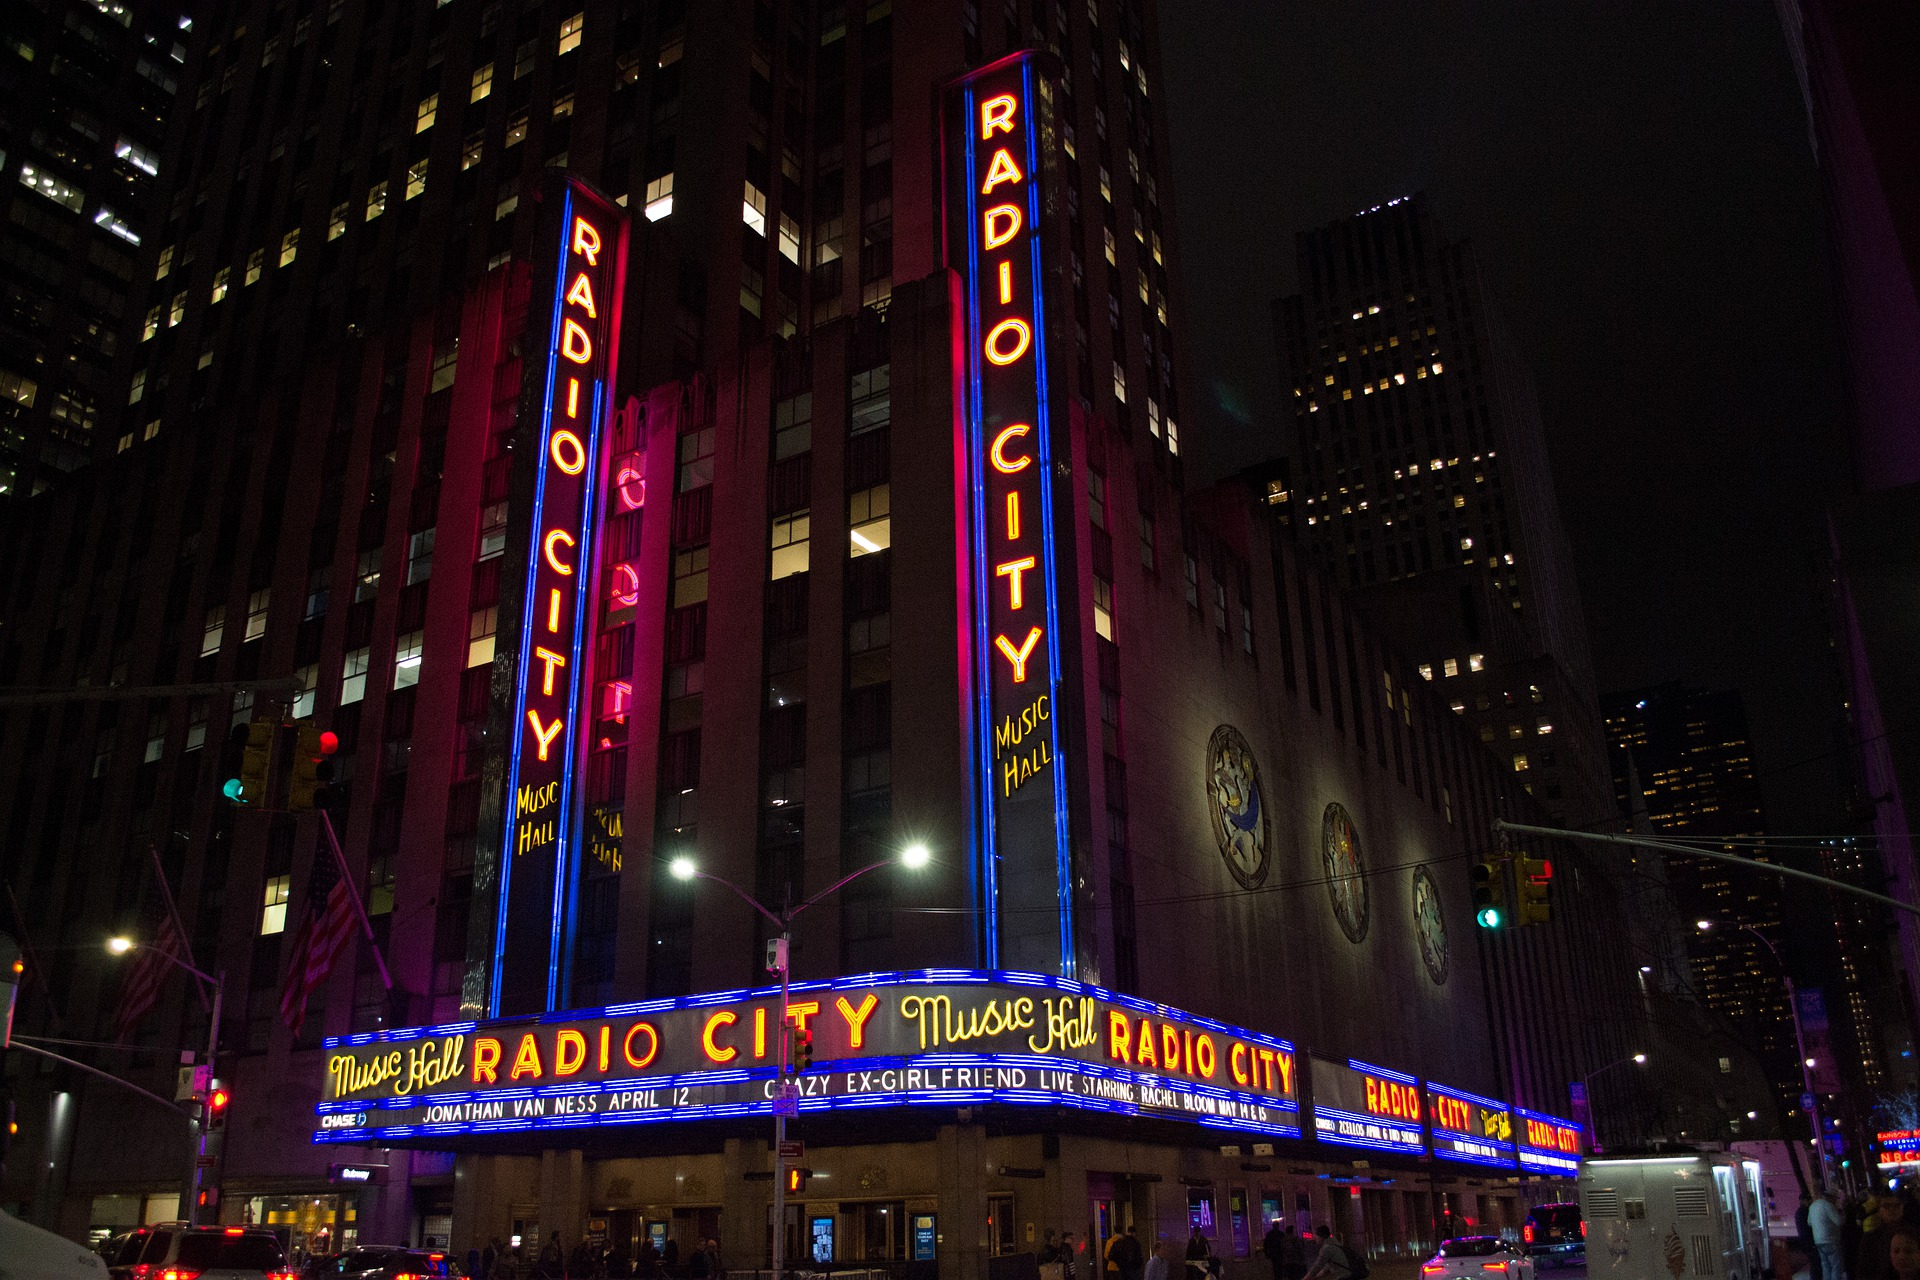 Radio City Music Hall, NY